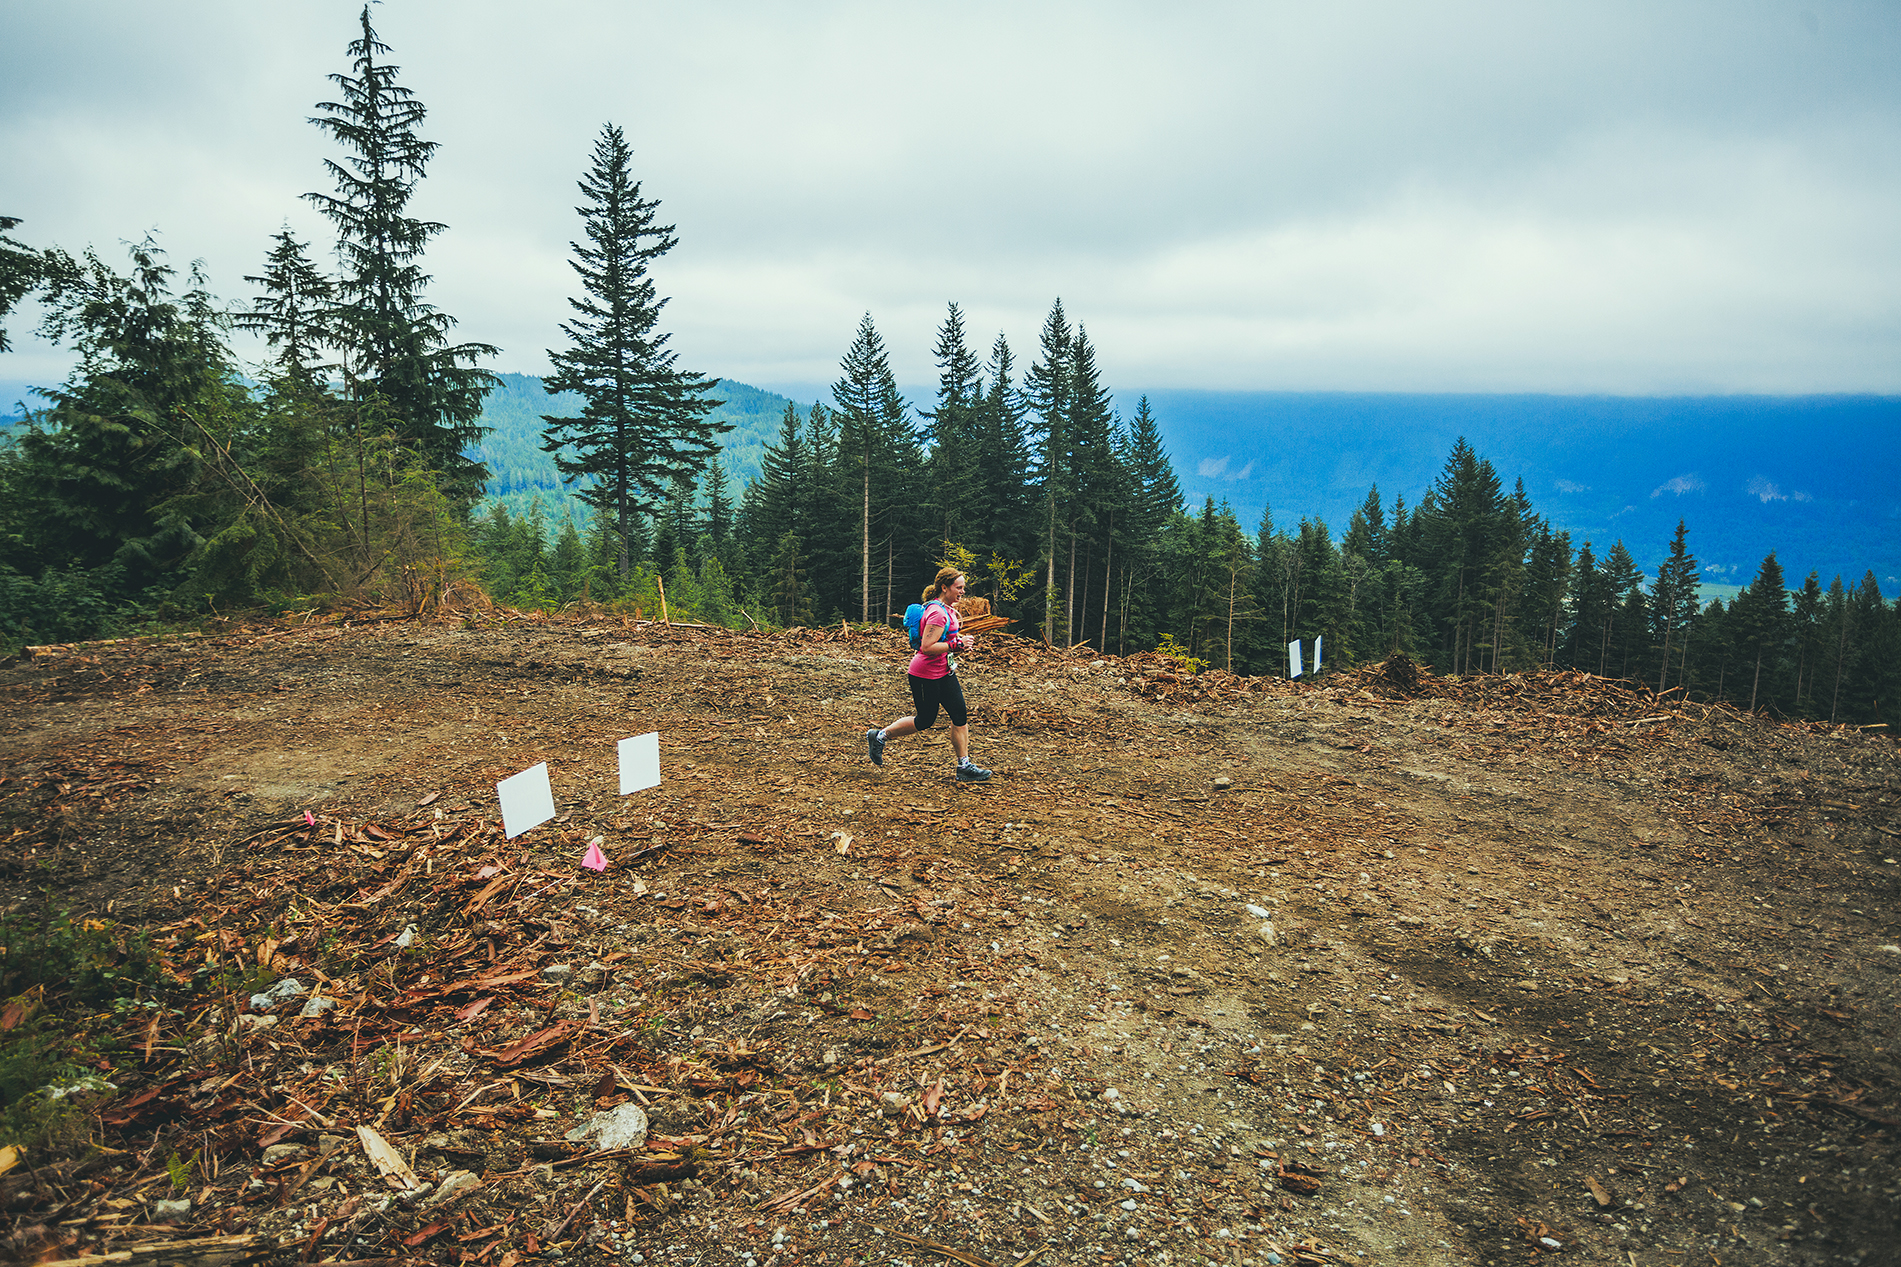 Fraser Valley Trail Races - Bear Mountain - IMG_2736 by Brice Ferre Studio - Vancouver Portrait Adventure and Athlete Photographer.jpg